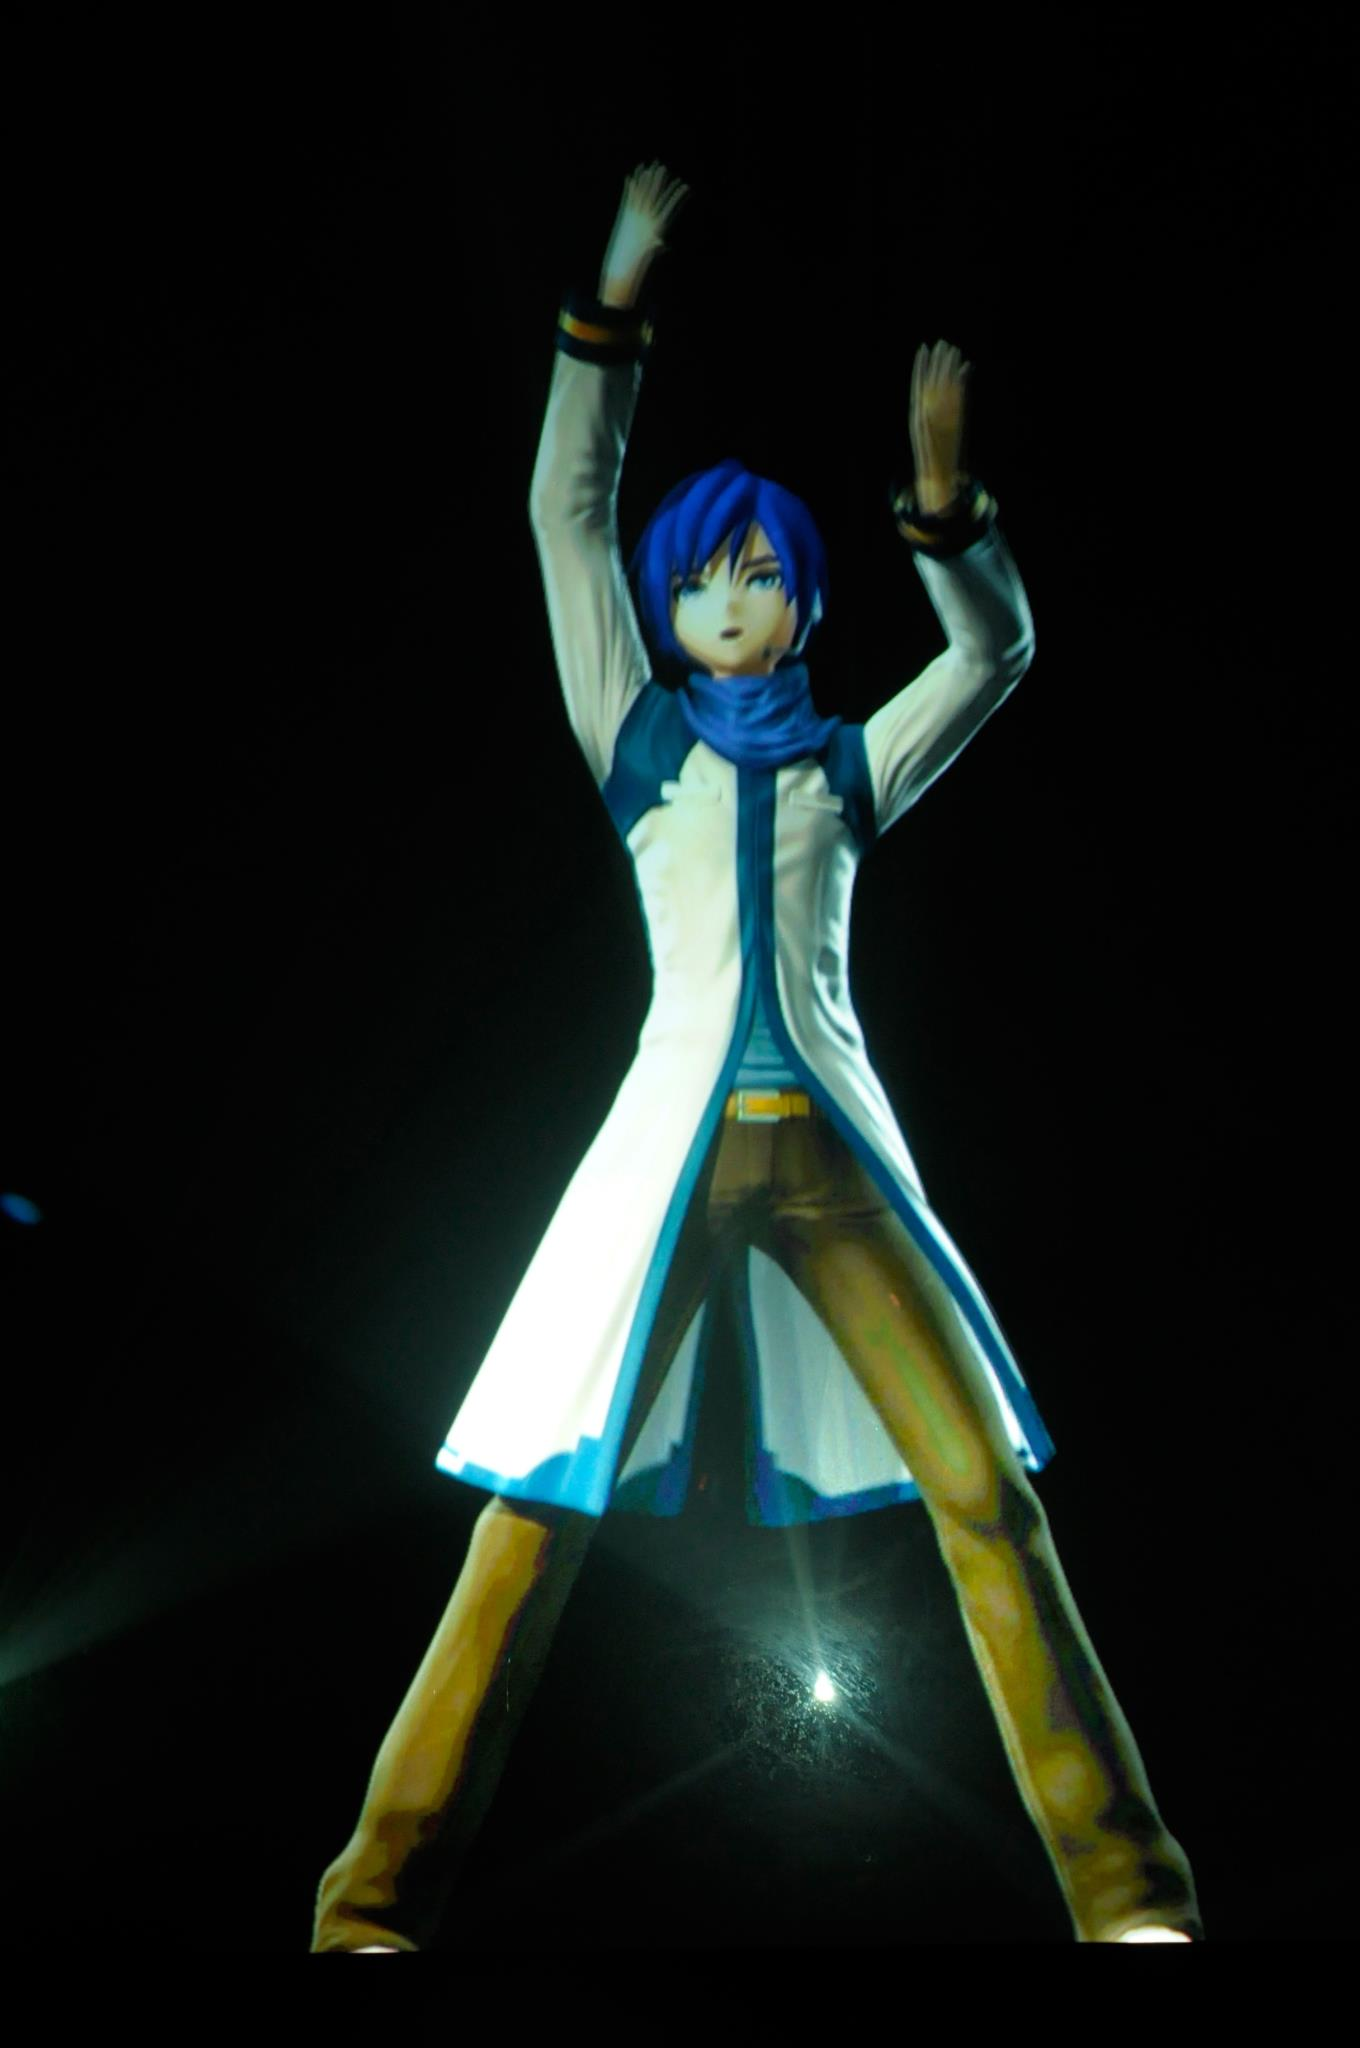 [IDOL INFO] VOCALOID PROFILE (Age, Height, etc.) | c a s s ...Vocaloid Kaito Age